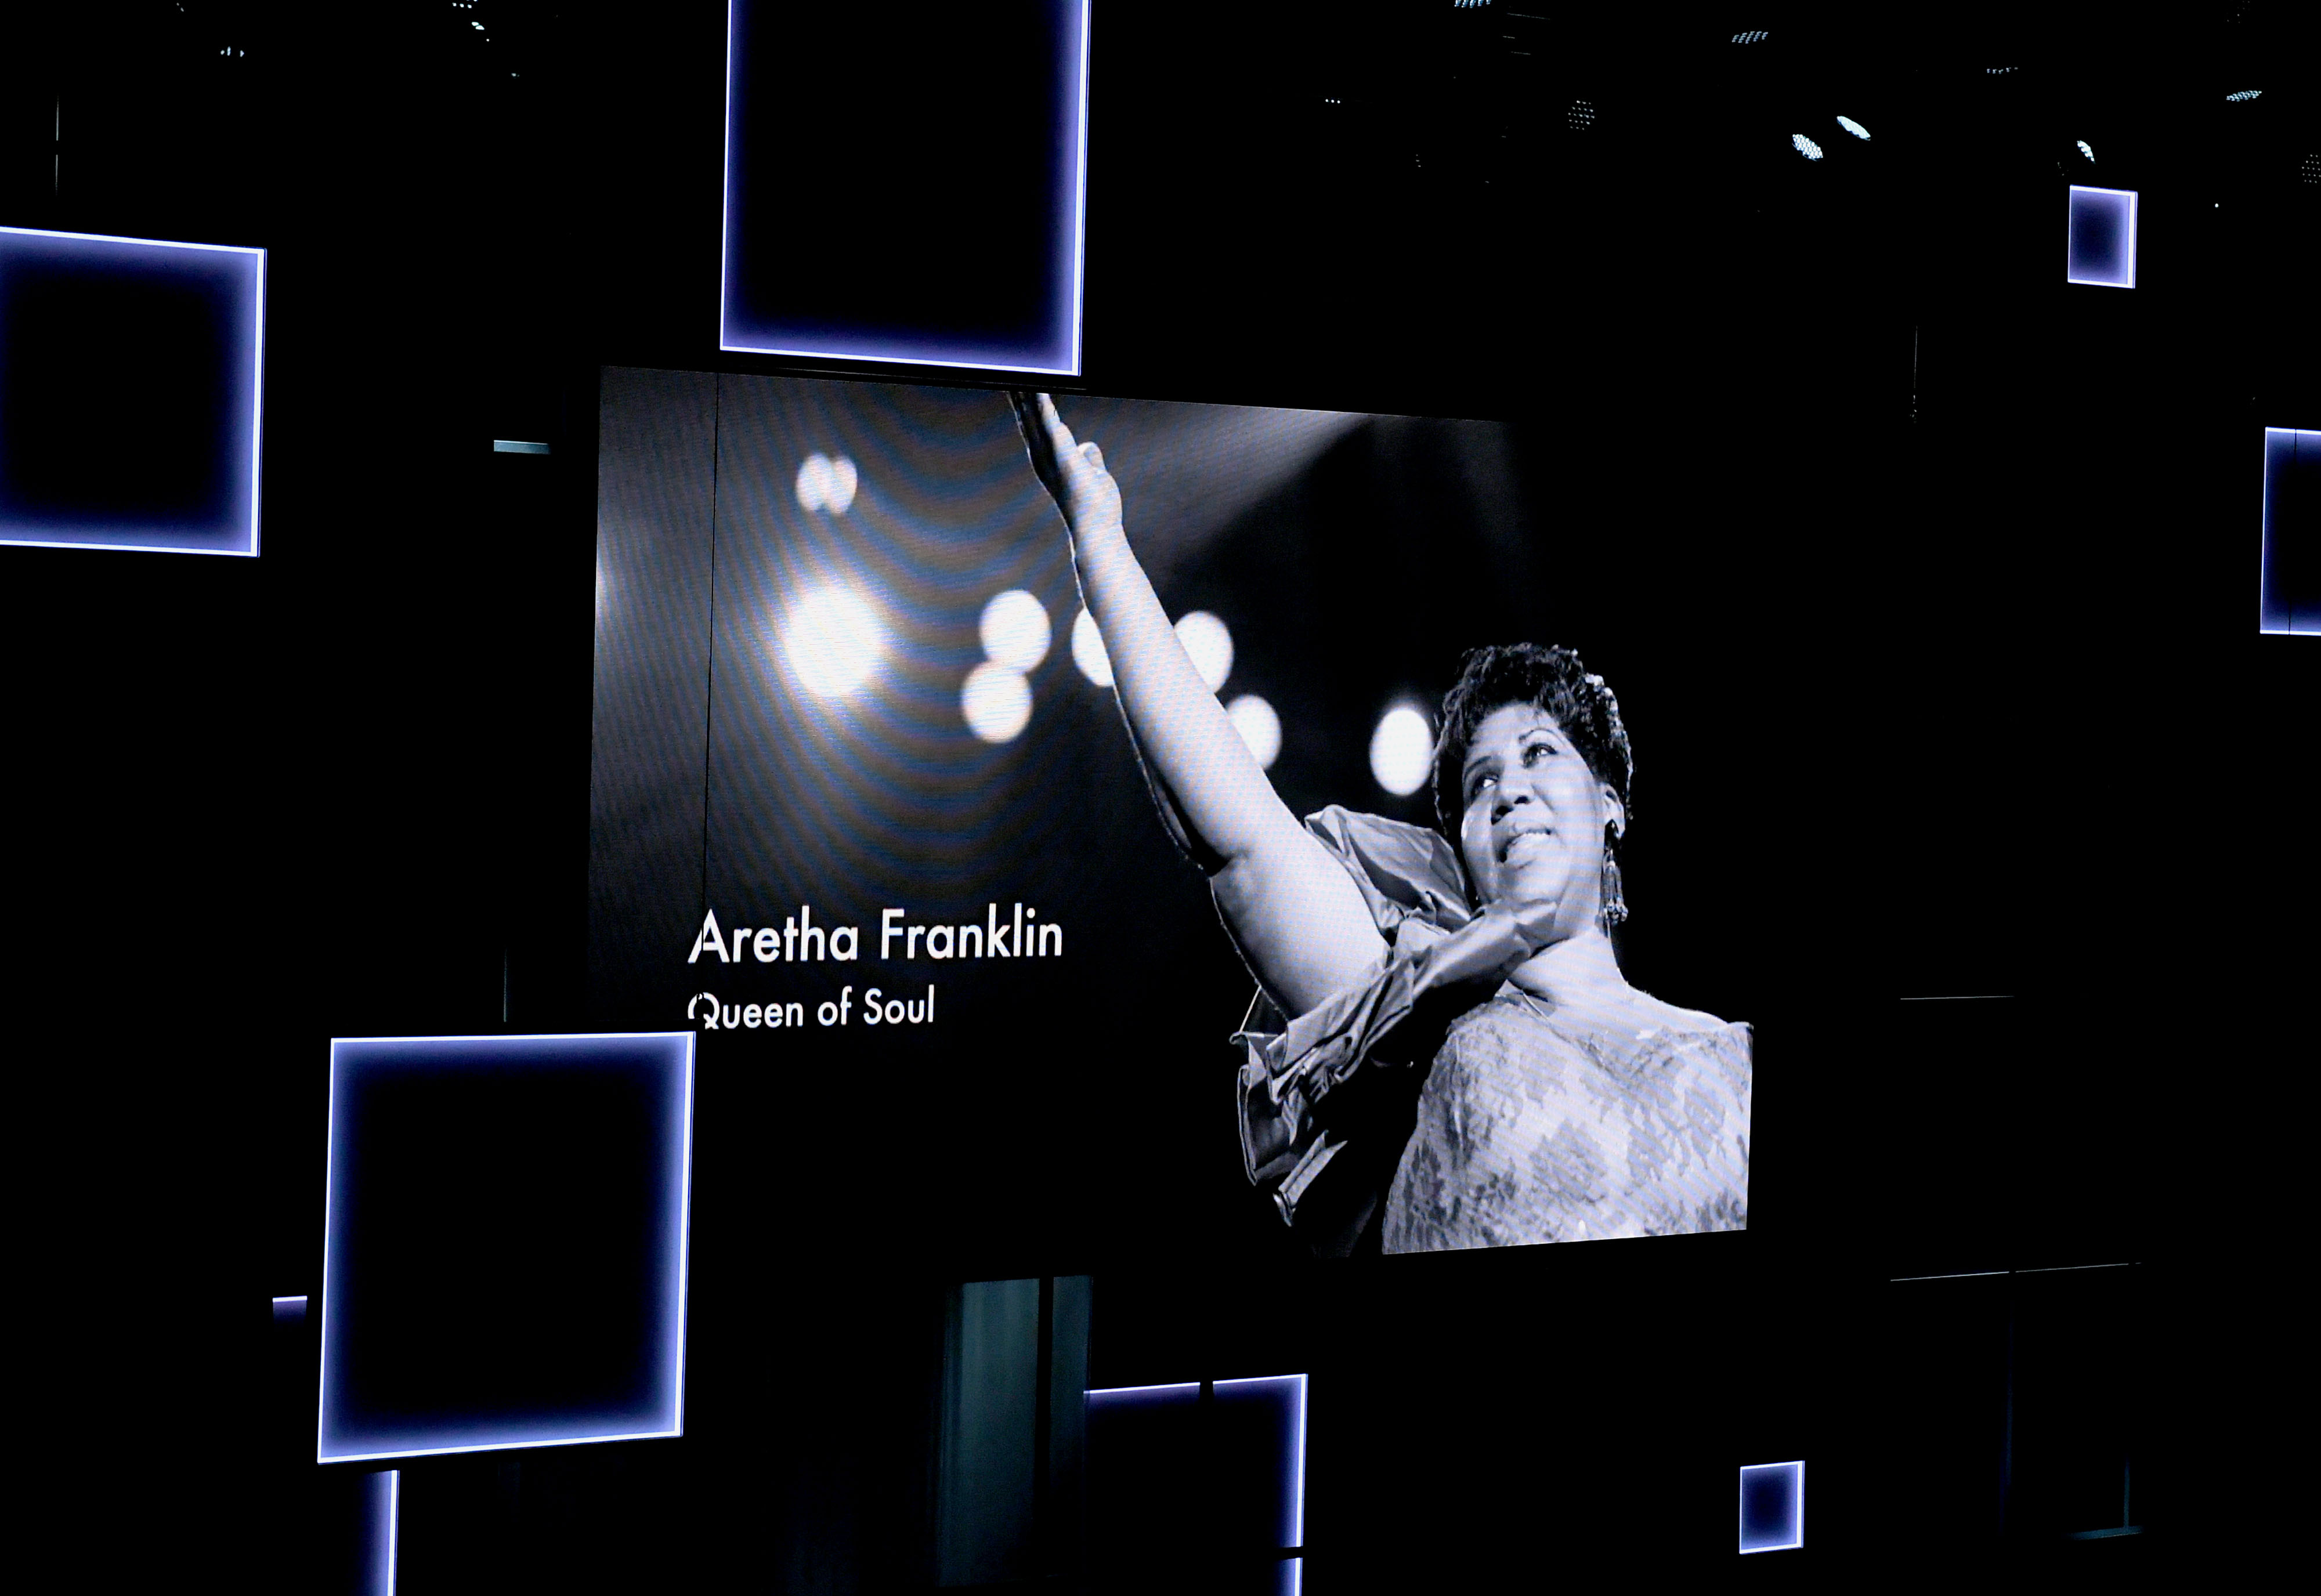 Aretha Franklin honored at the 50th NAACP Image Awards at Dolby Theatre on March 30, 2019 in Hollywood, California. (Photo by Kevin Winter/Getty Images)